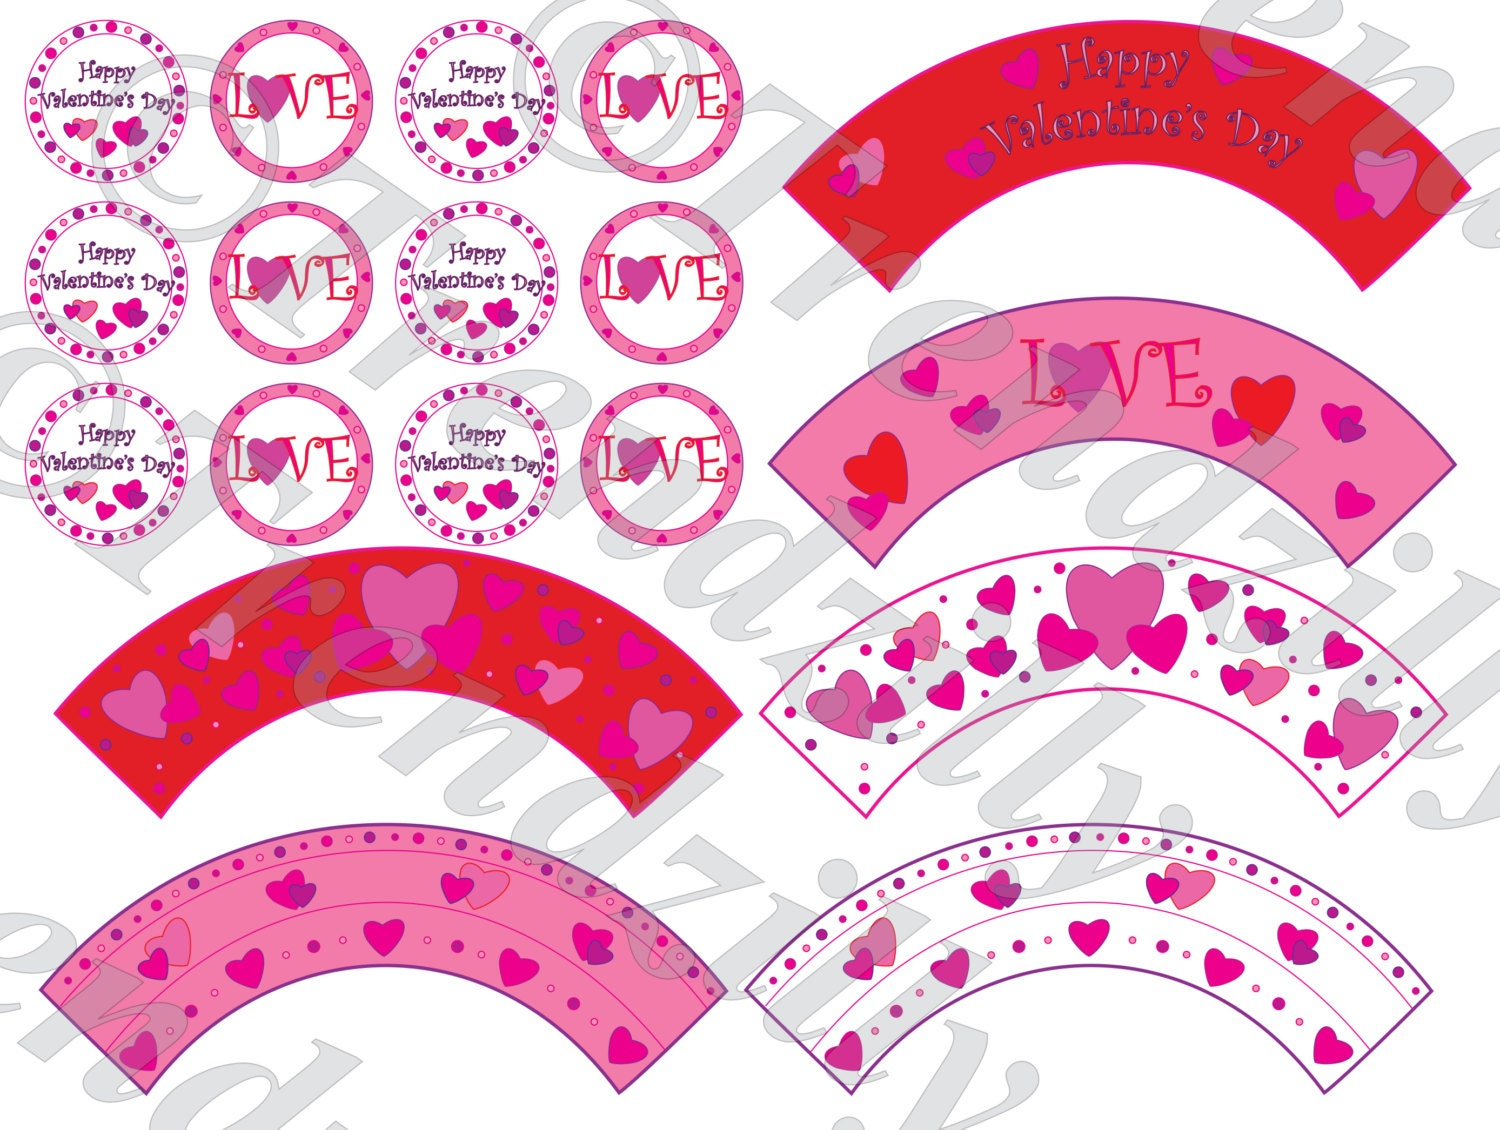 photograph relating to Valentine Stickers Printable identify Valentine Cupcake Wrapper and Toppers, Centre Valentines